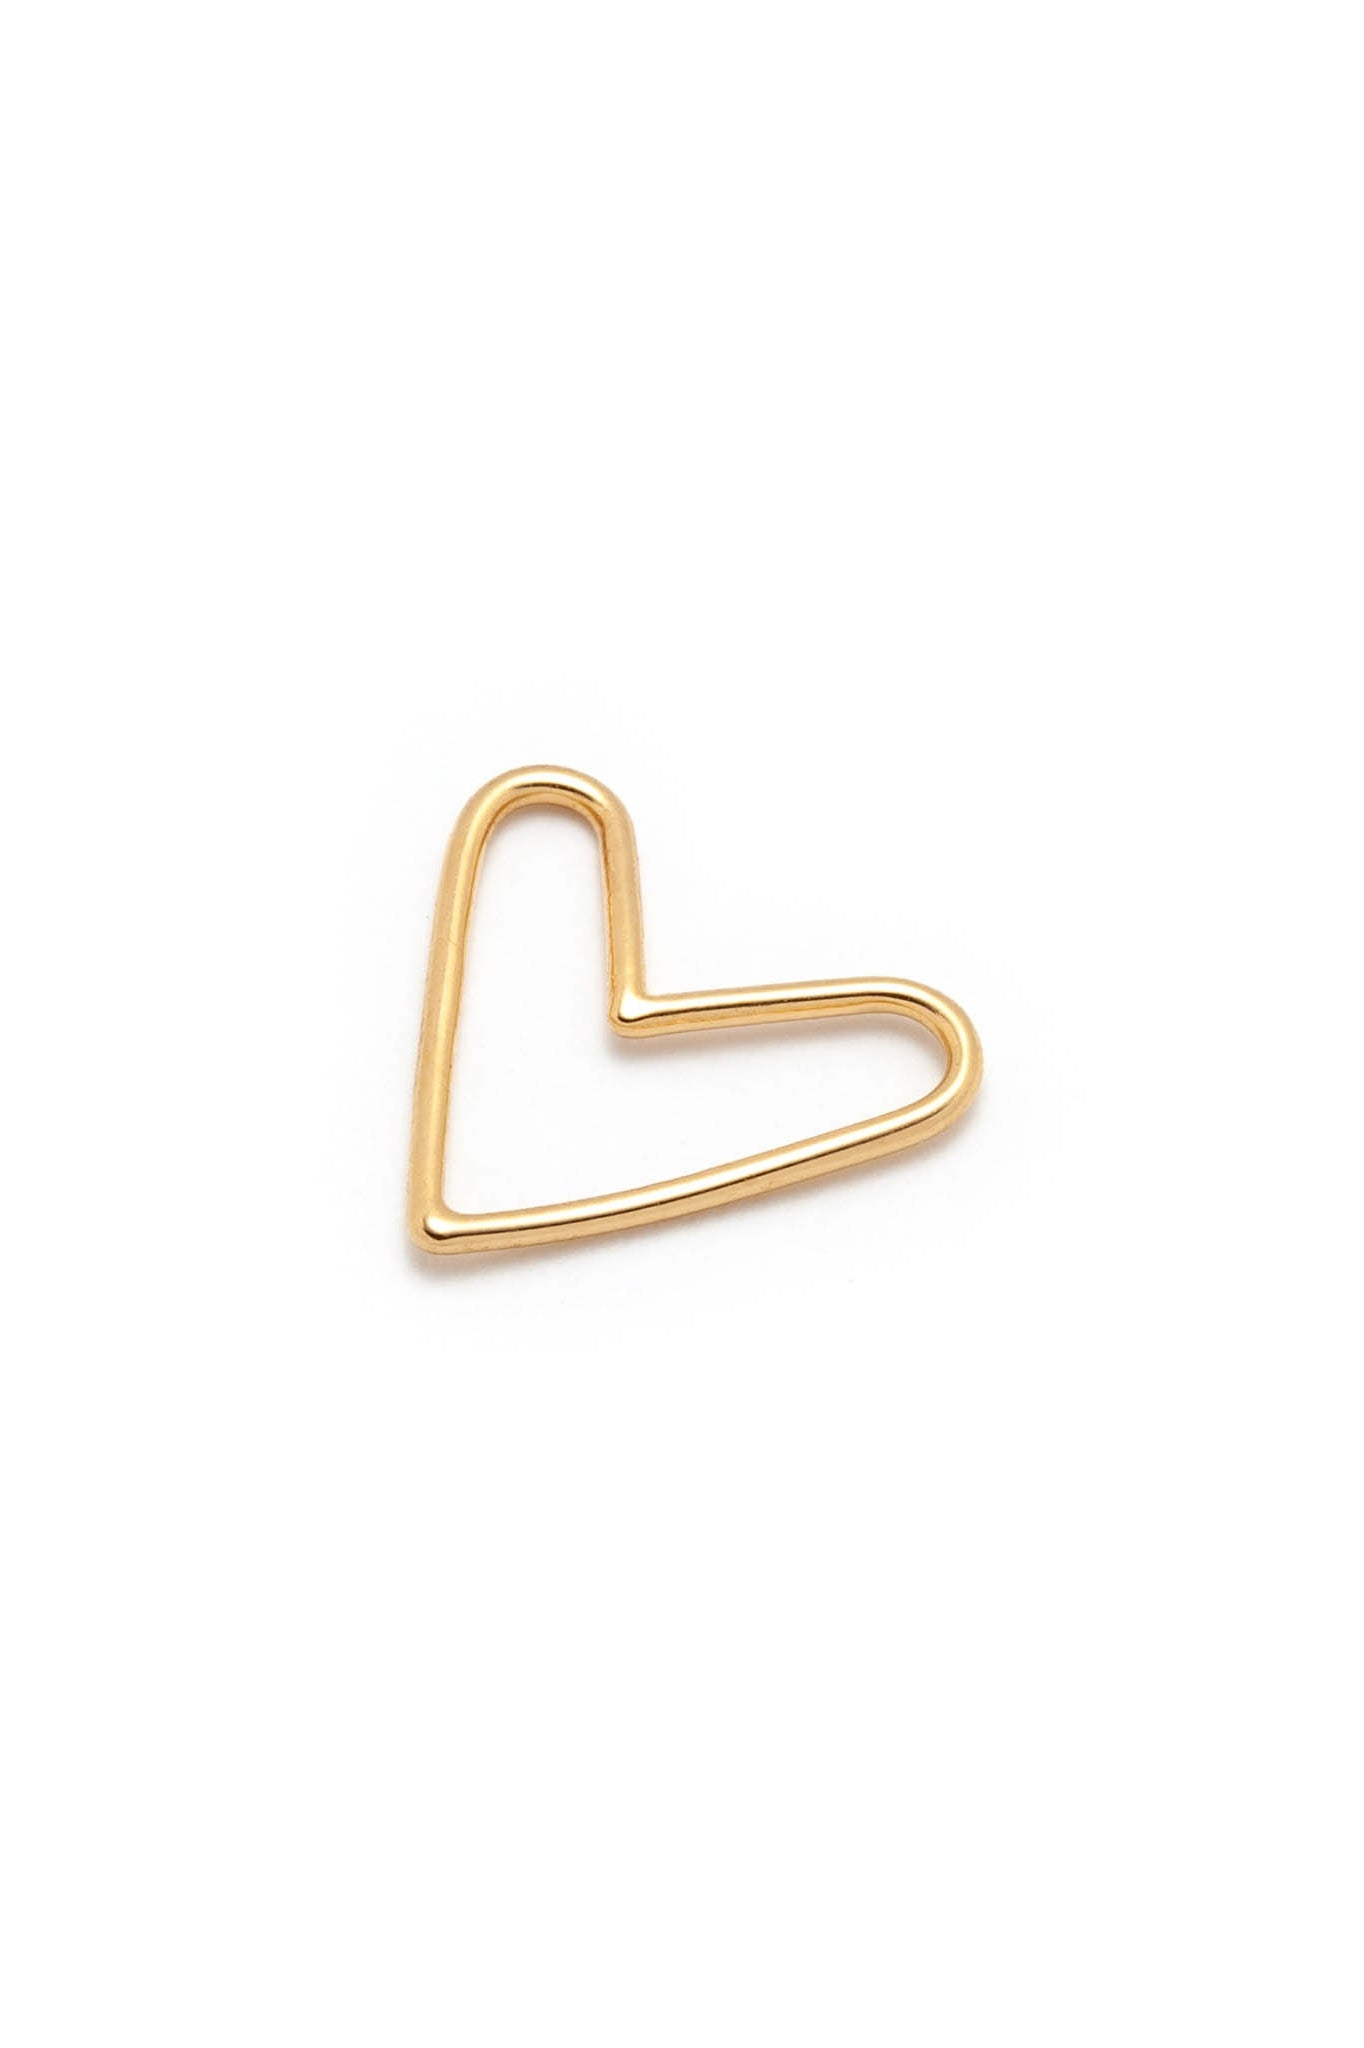 Big heart individual necklace charm by Lidia; 14k yellow gold plated silver